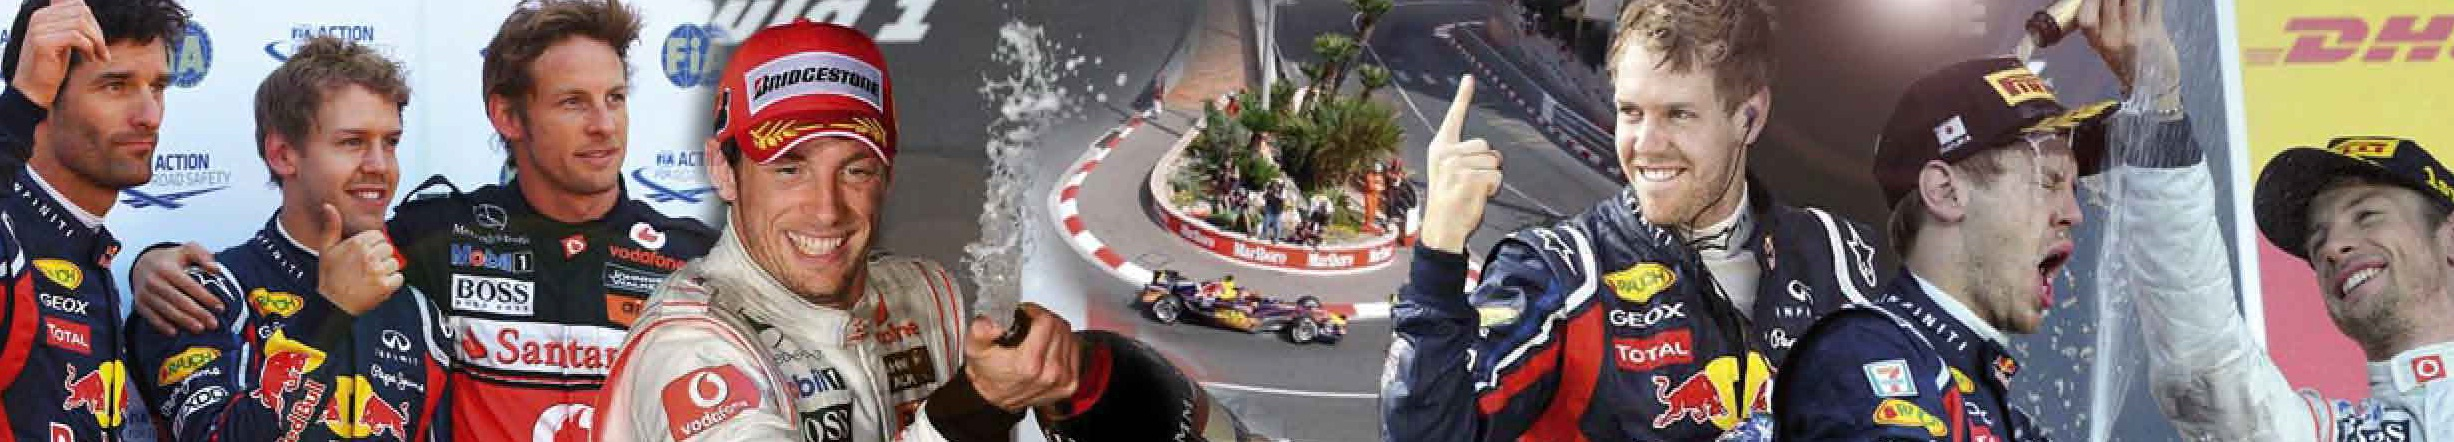 Monaco Grand Prix tickets & Corporate Hospitality Packages